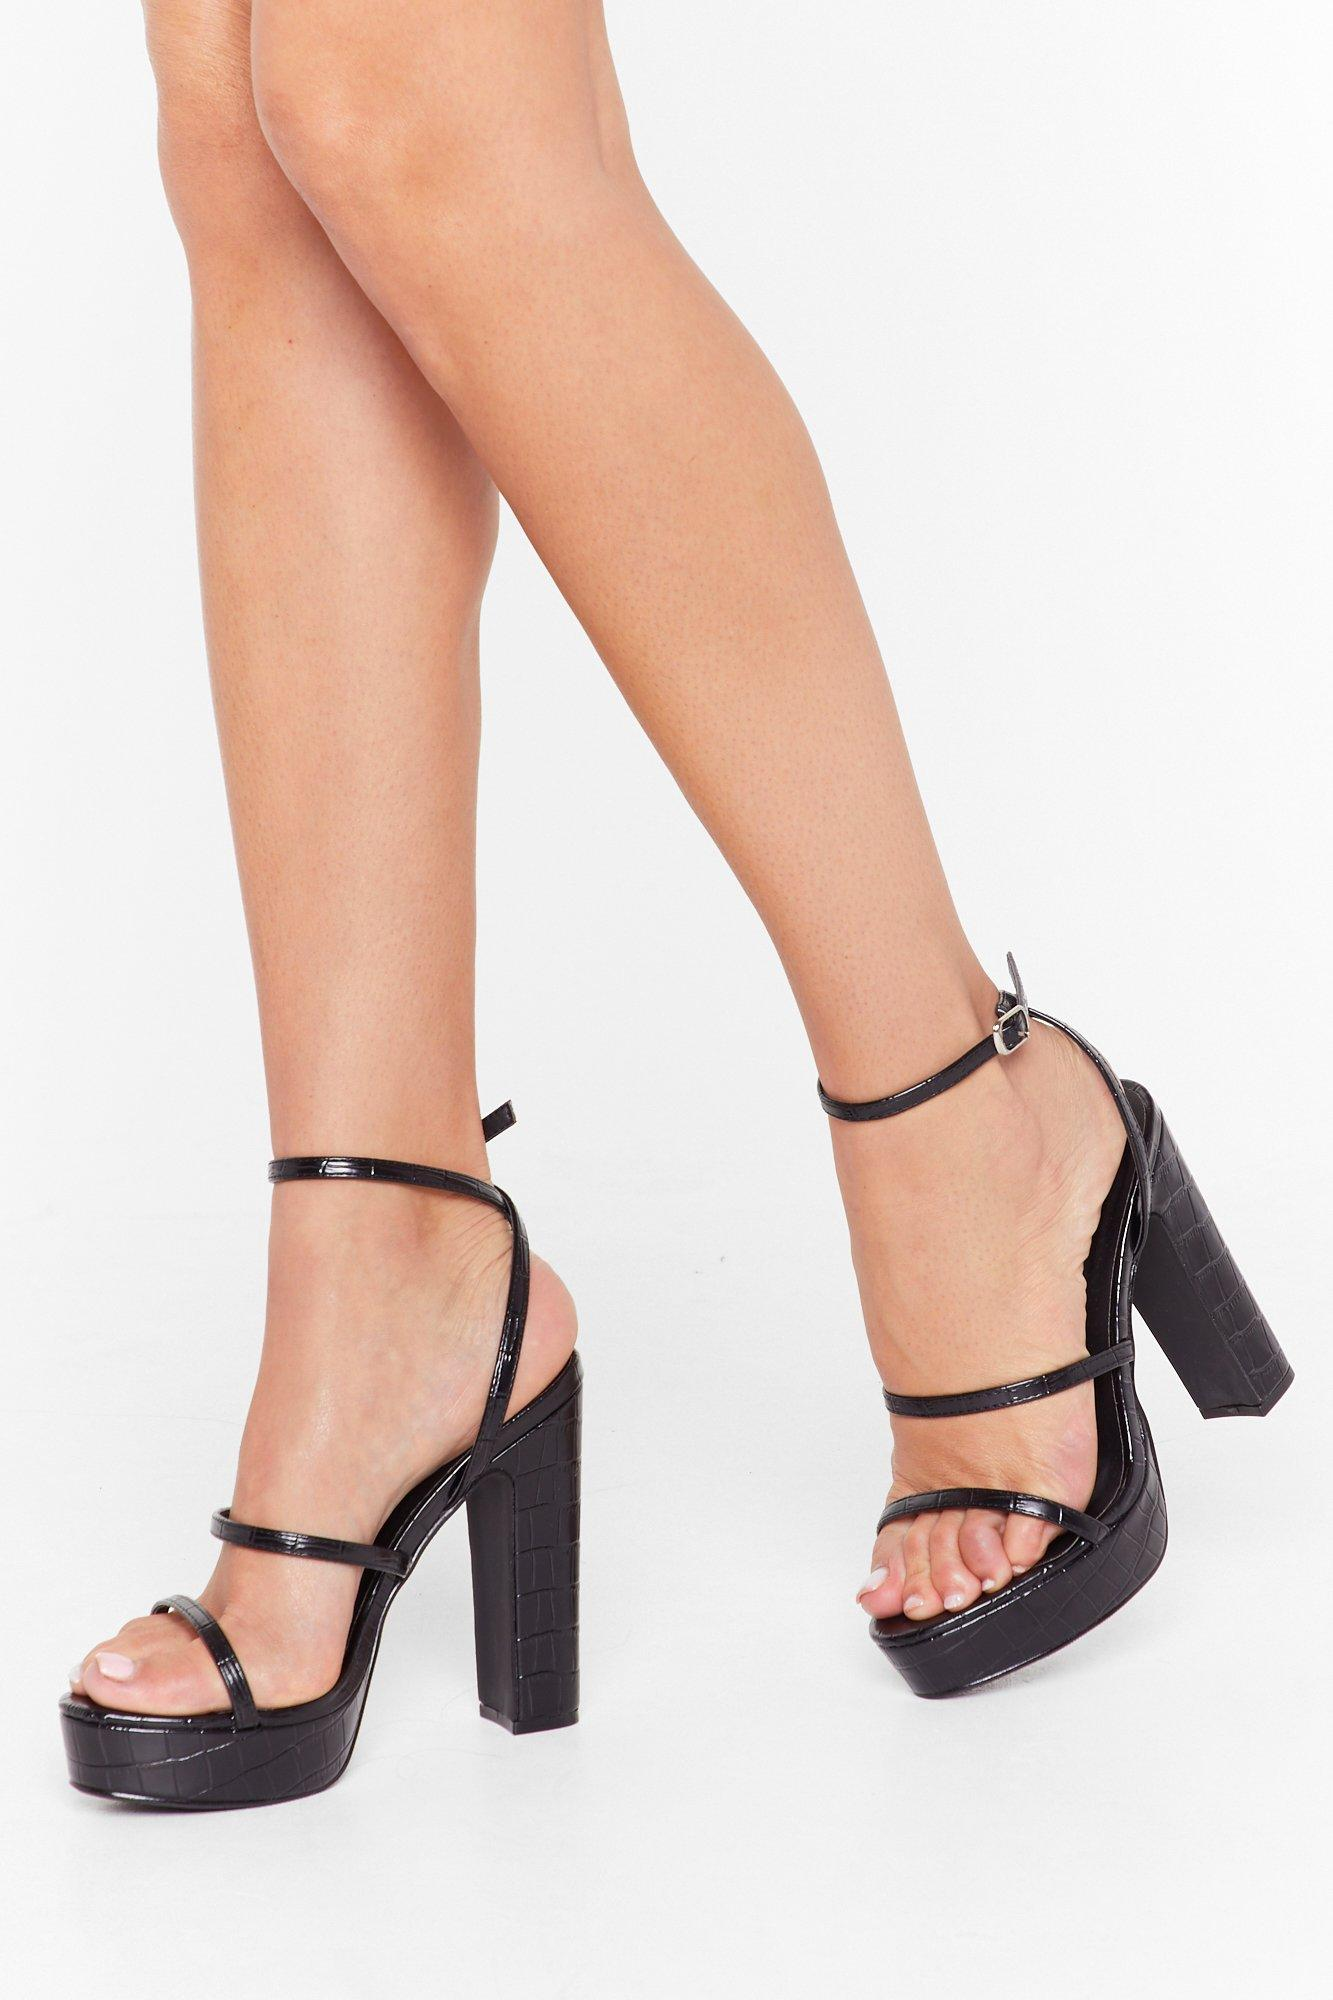 Image of Croc You Down Strappy Platform Heels